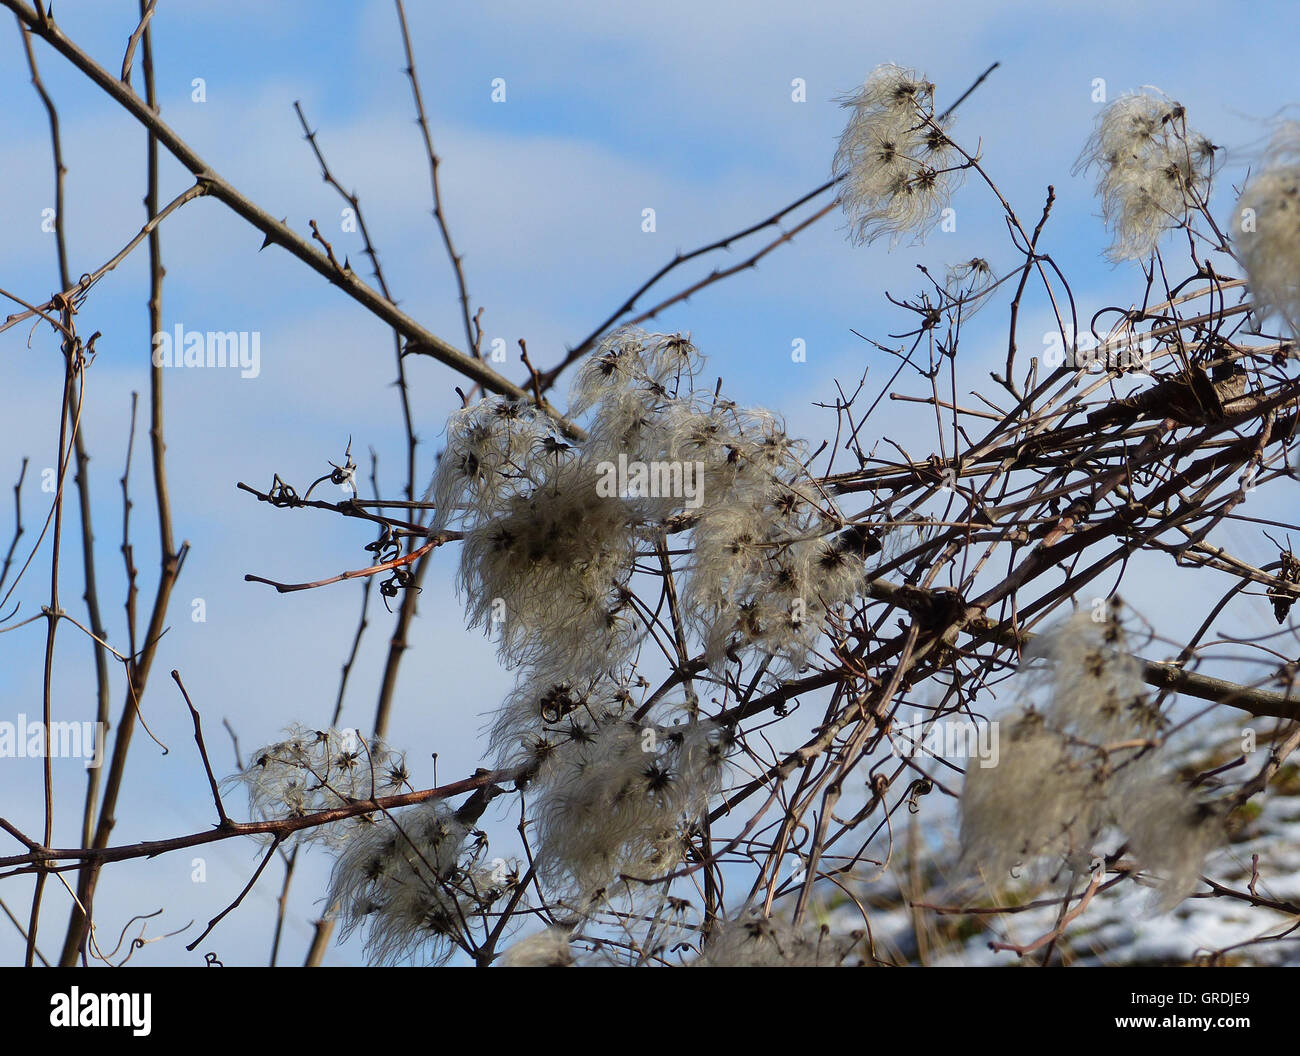 Clematis, Withered, Clematis Vitalba - Stock Image